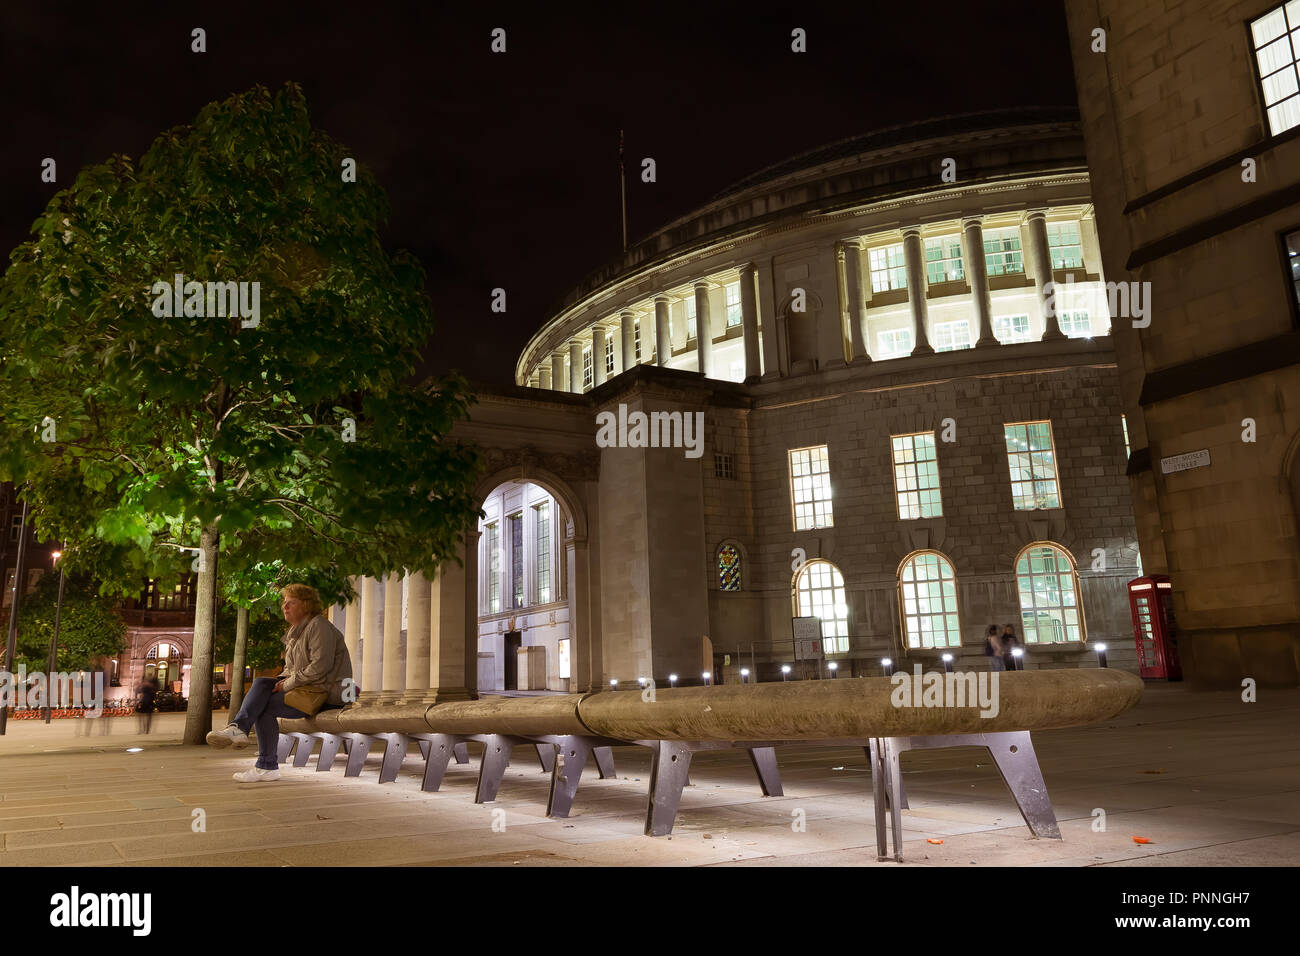 September 2017 - a woman sits at night on an illuminated stone bench in front of Manchester Central Library, the iconic building in the center of Manc - Stock Image